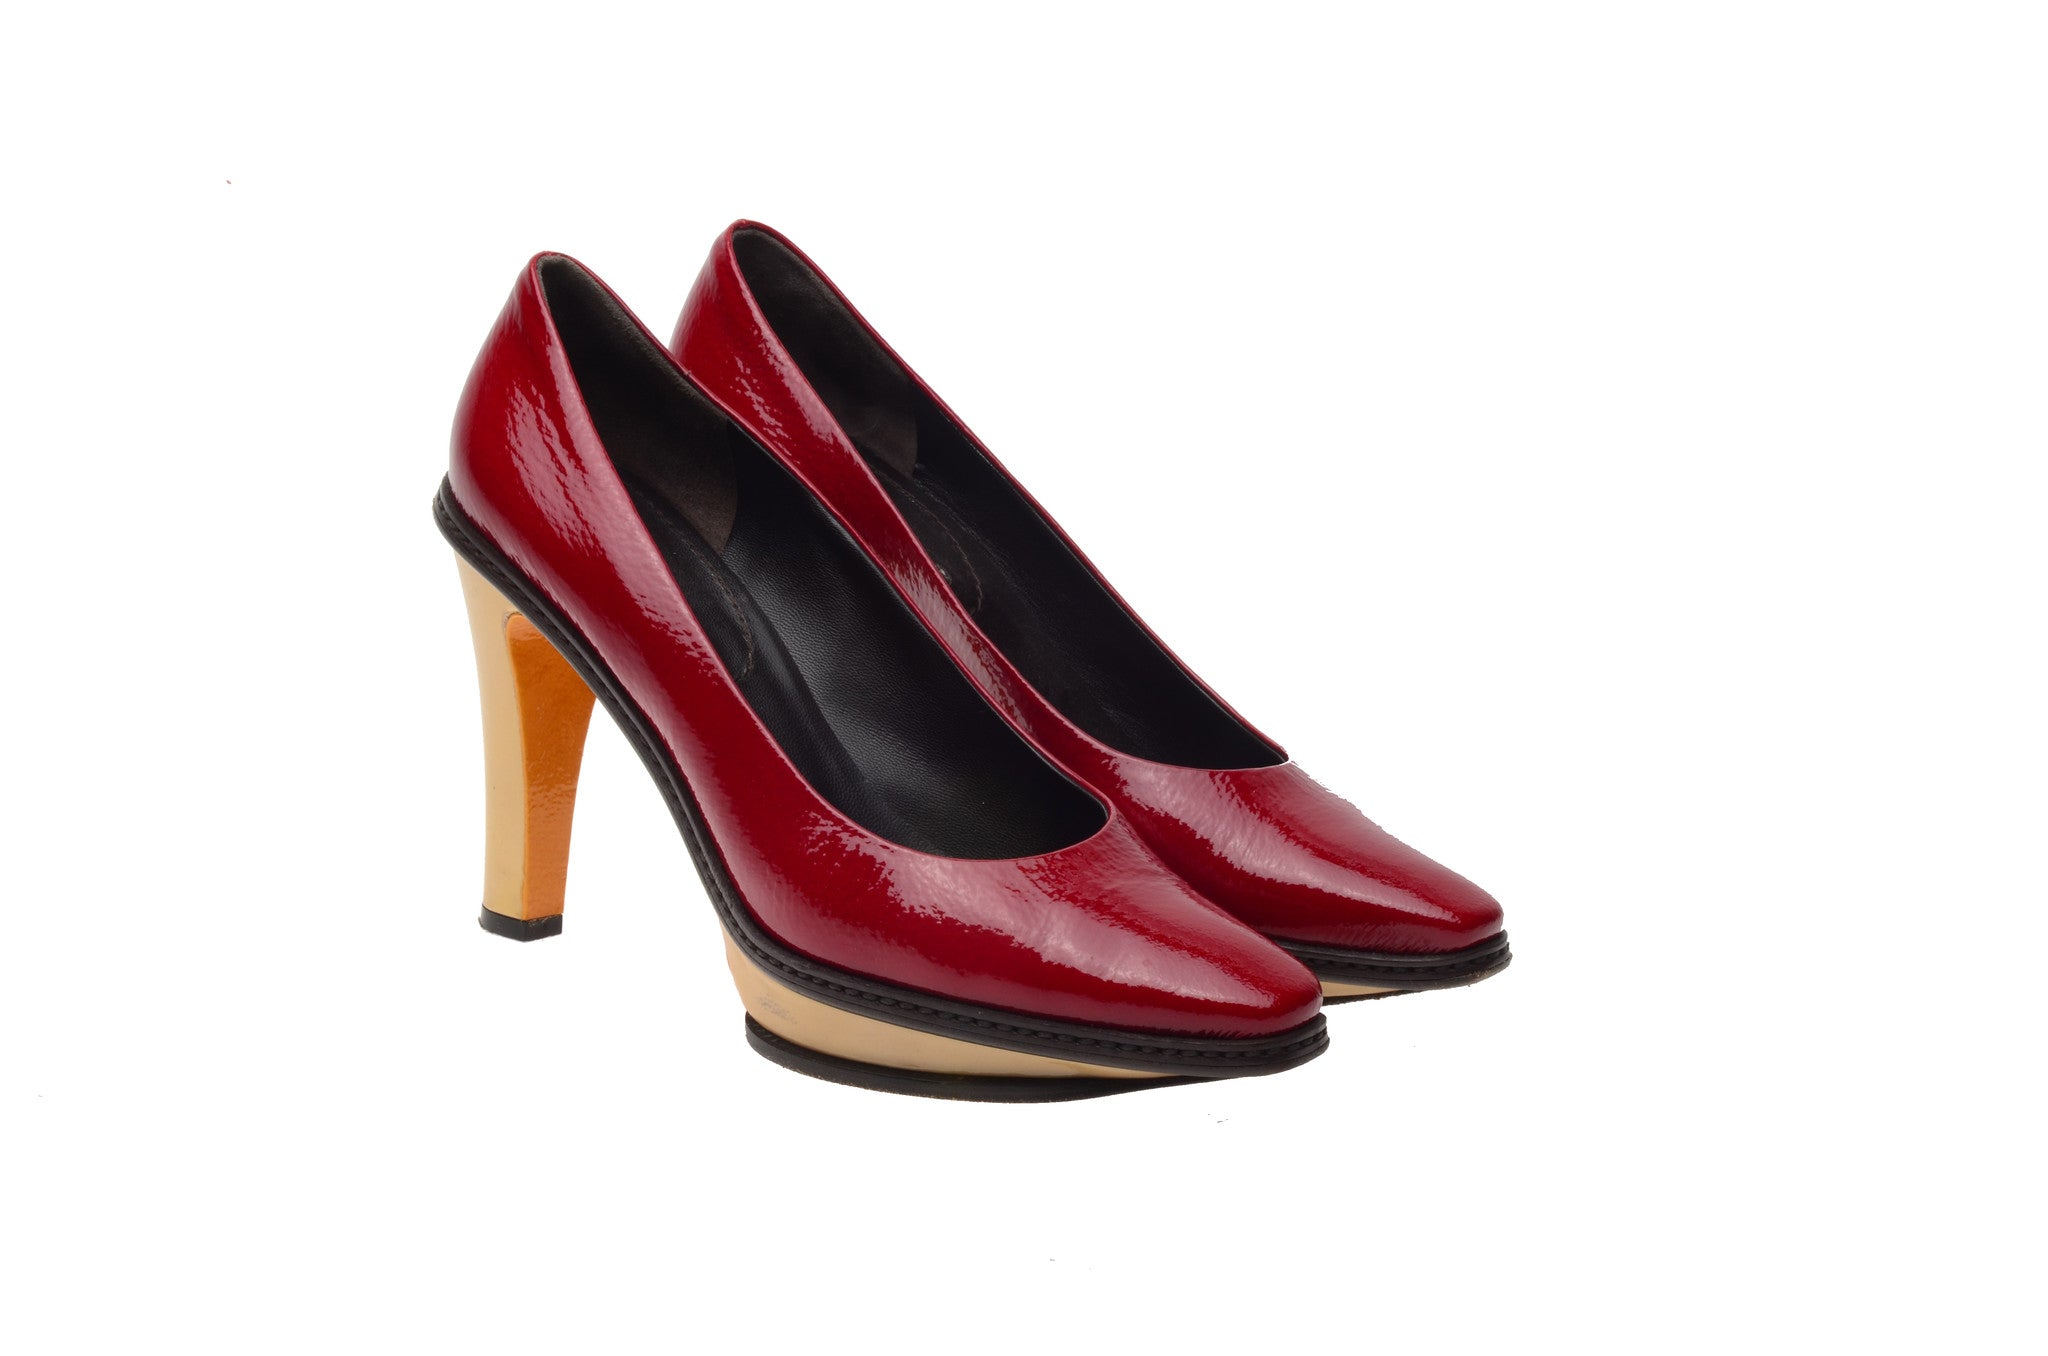 8e4aed2b7ff Celine - Red Patent Leather Heels with Beige Platform - IT 38 – LUXHAVE